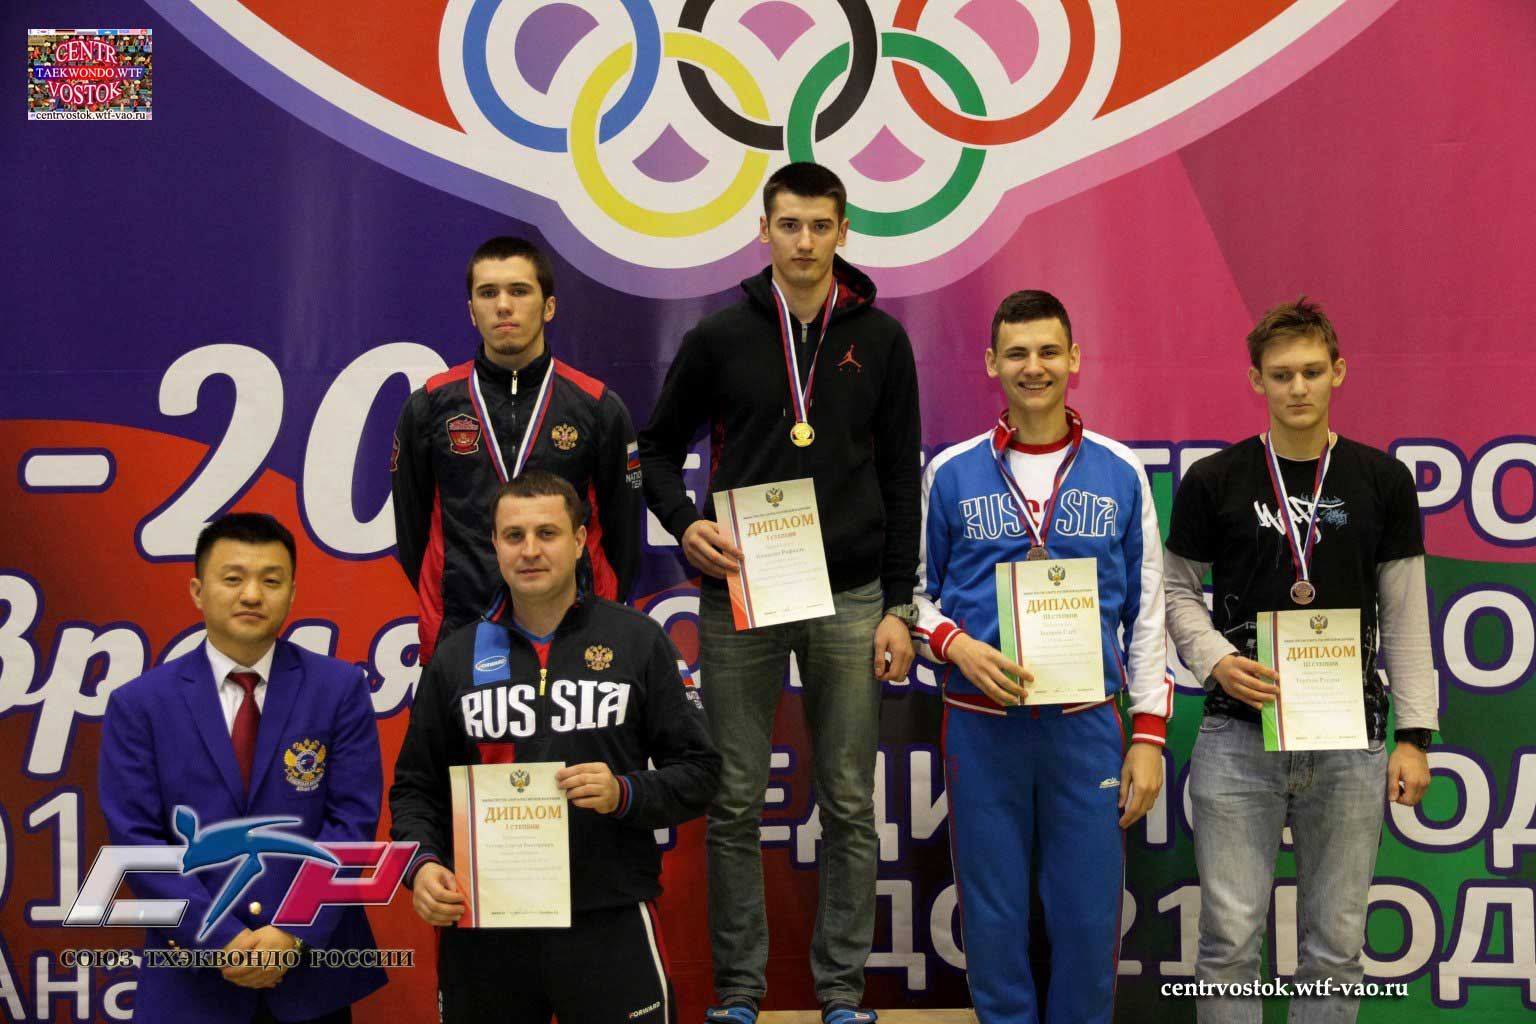 Male_medals_87kg